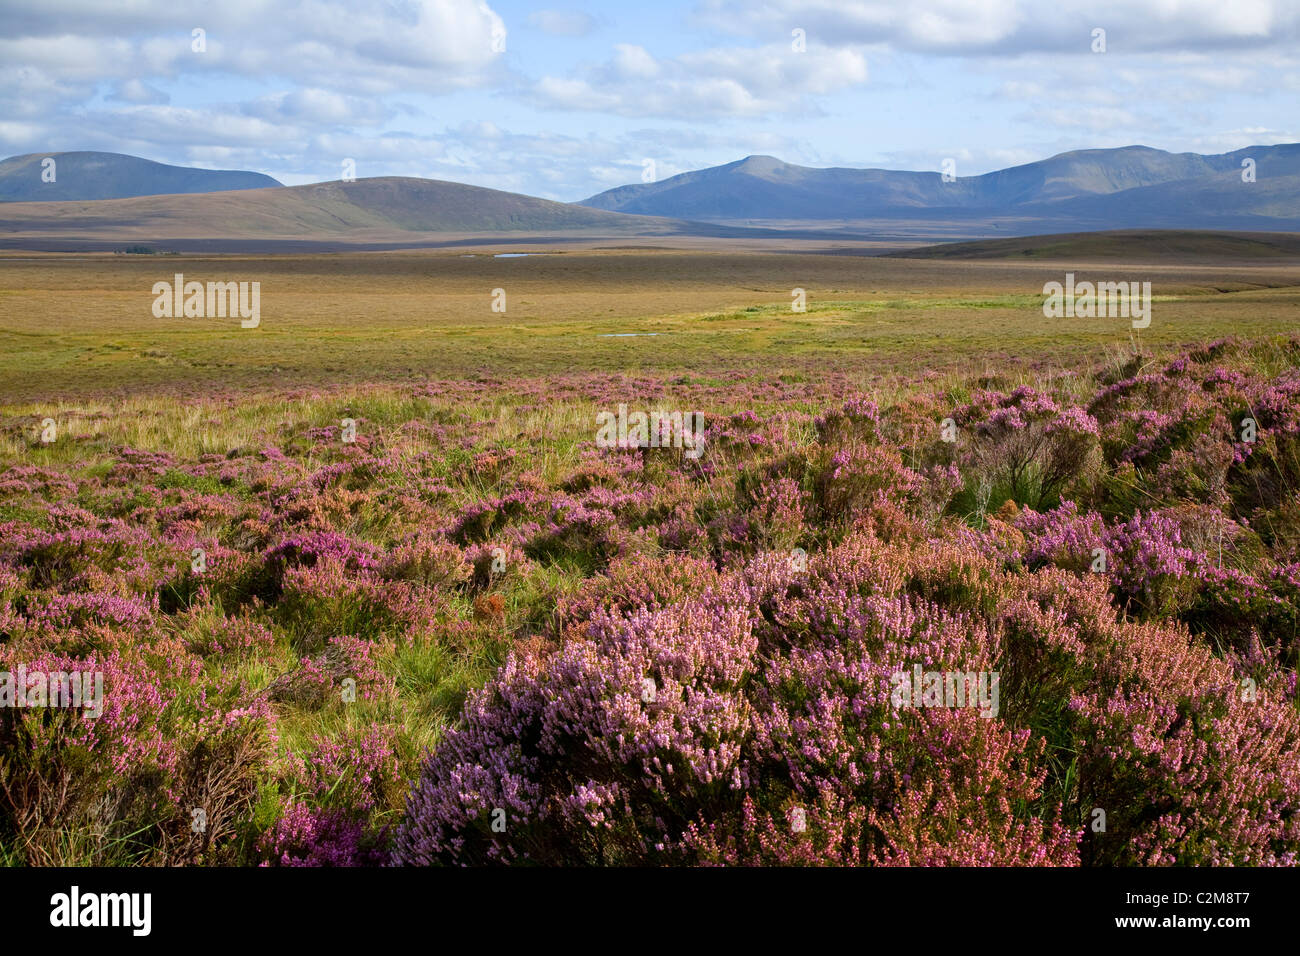 Heather blooming beneath the Nephin Beg Mountains, Ballycroy National Park, County Mayo, Ireland. - Stock Image